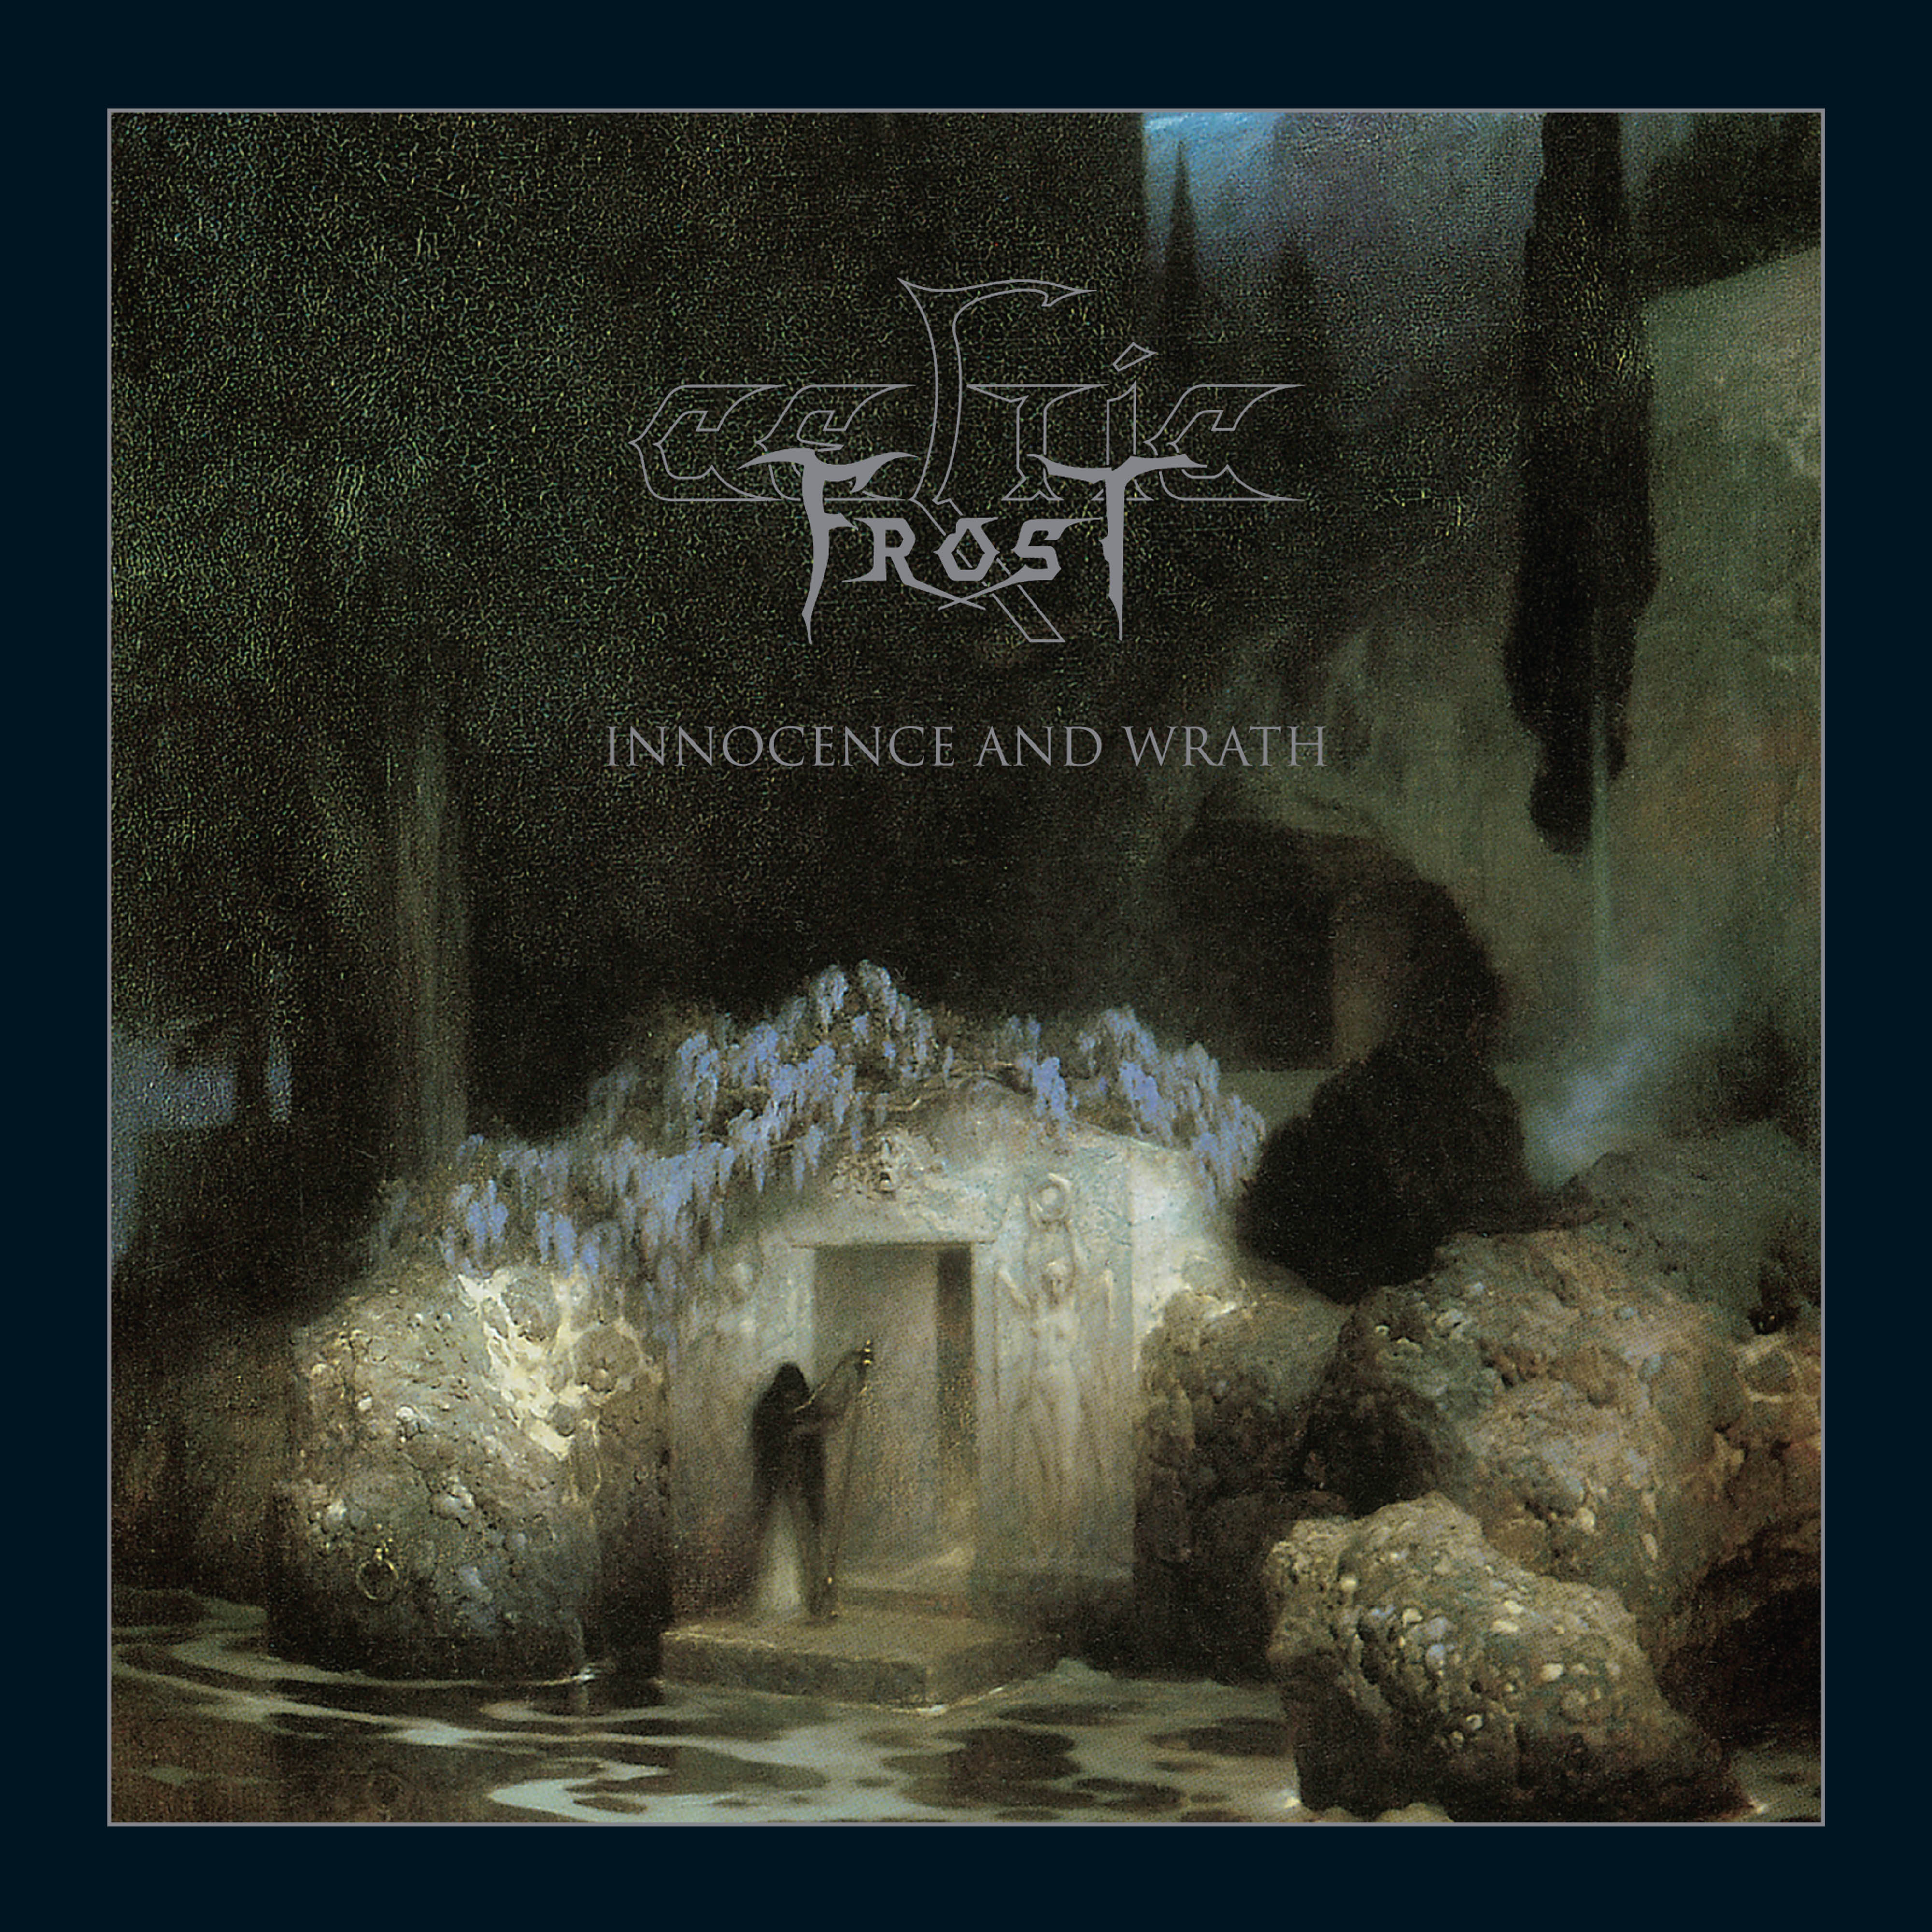 Celtic Frost – Innocence and Wrath